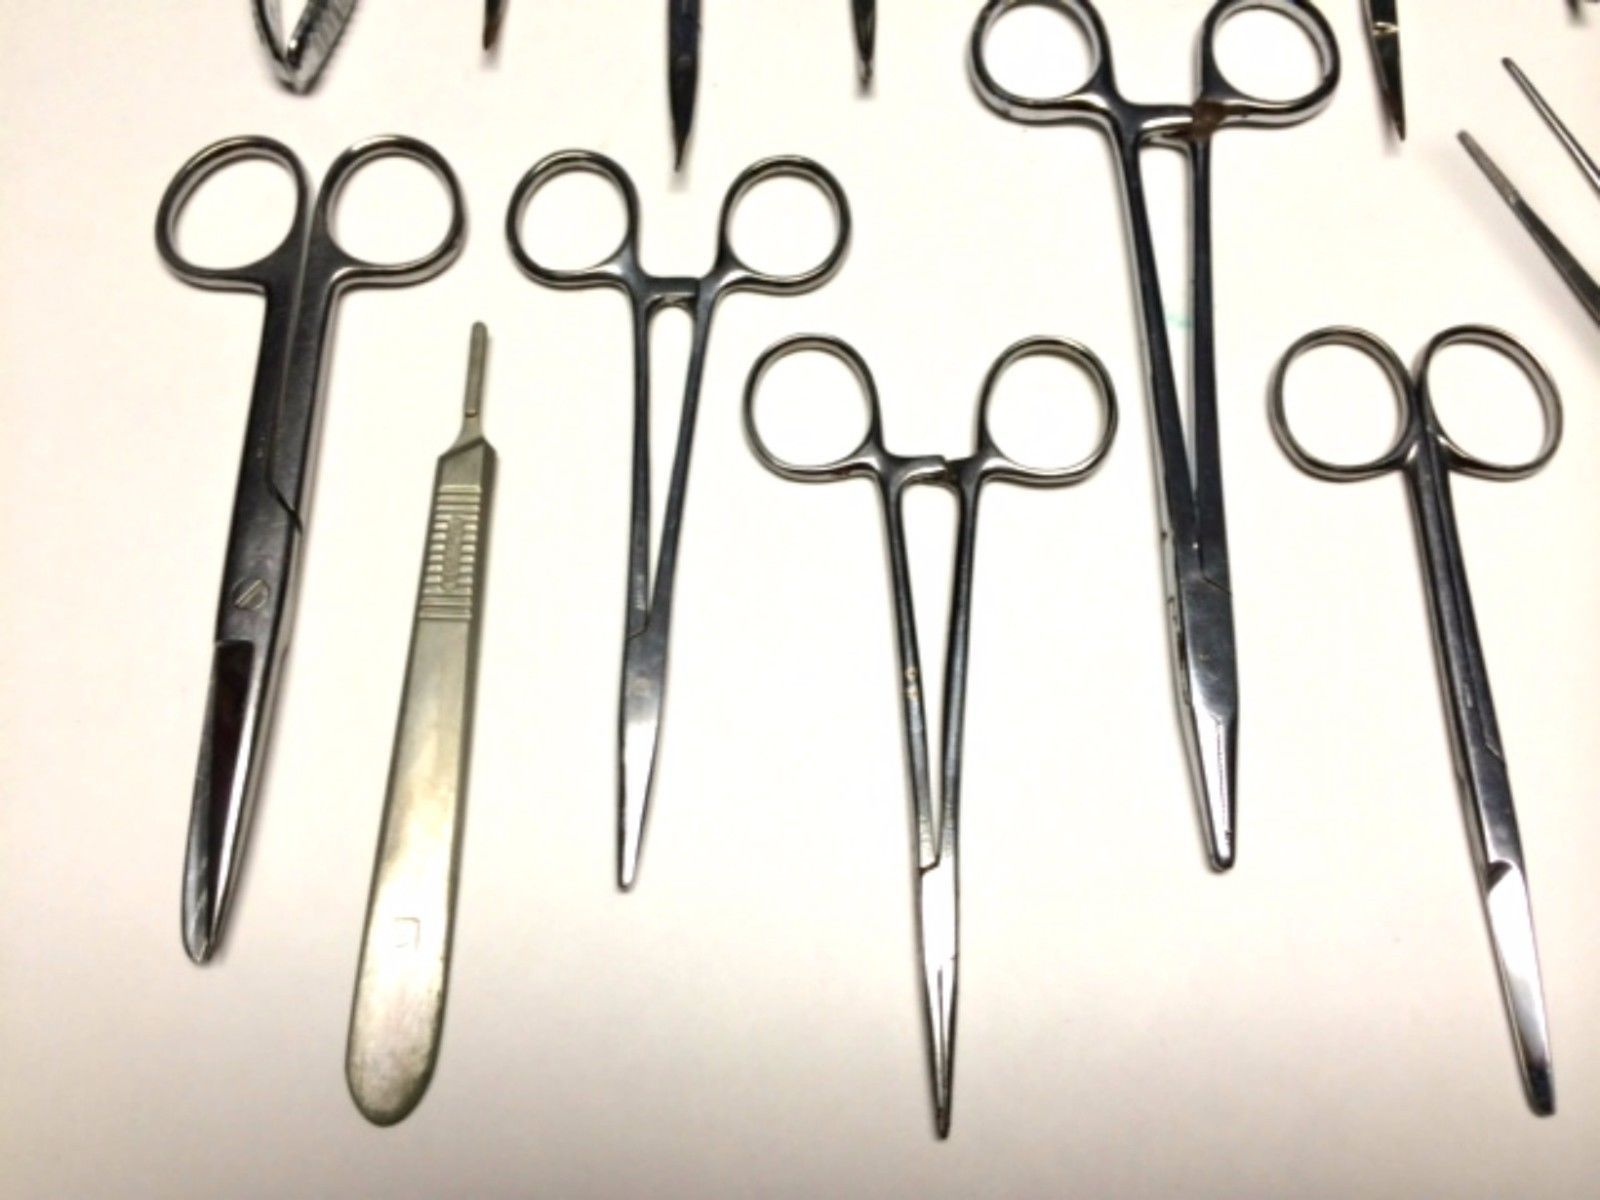 Huge Lot Medical Instruments Stainless Steel Vintage Surgical German Swiss USA